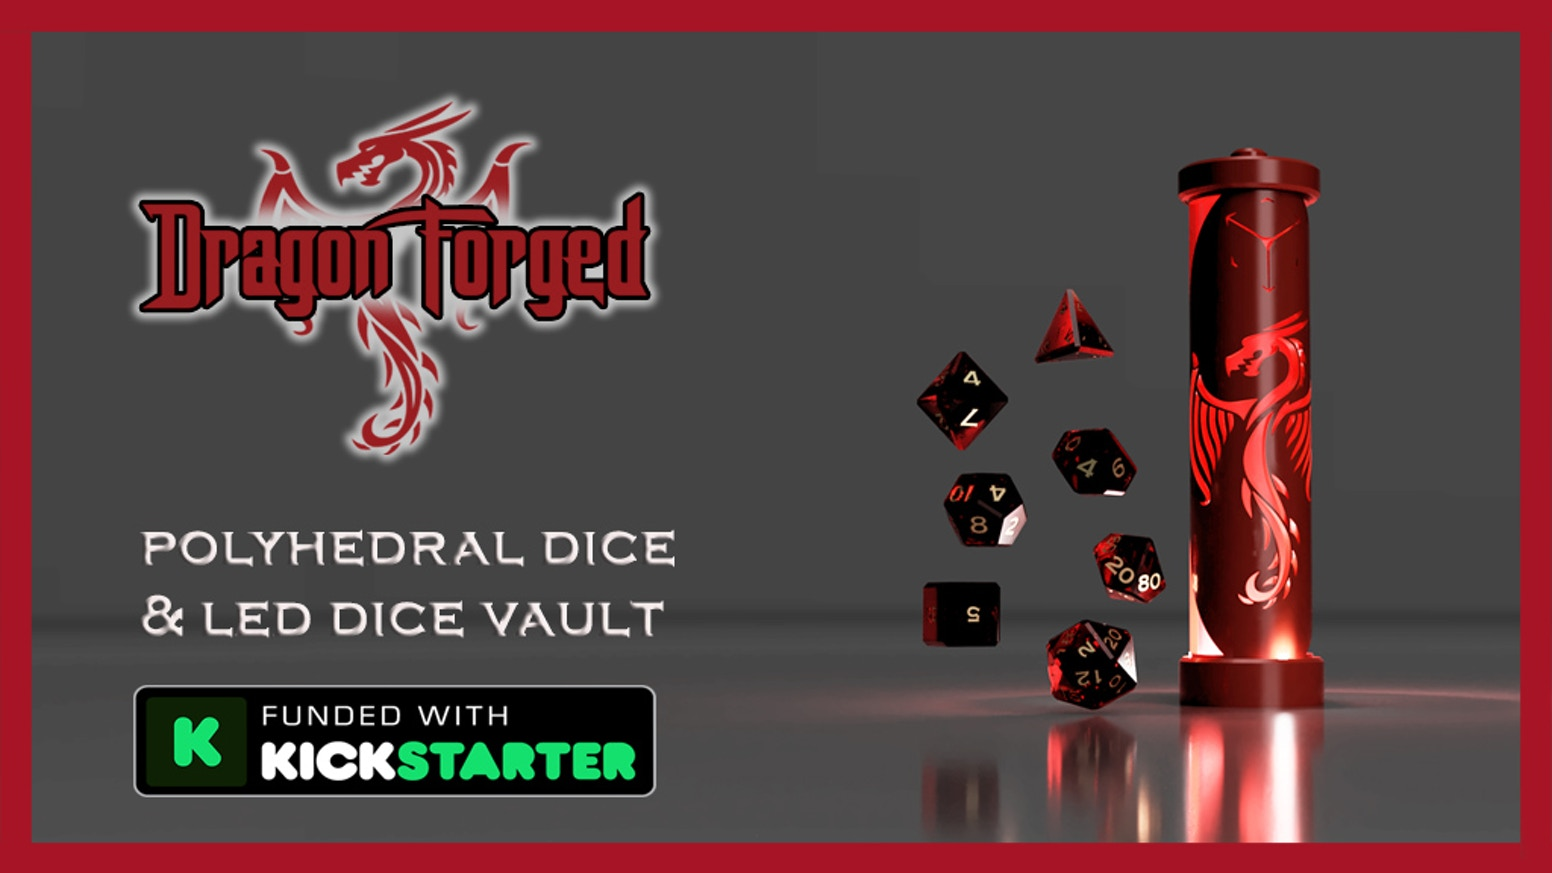 Bringing the next evolution of polyhedral dice to your table. Designed for the highest level of randomization and quality.